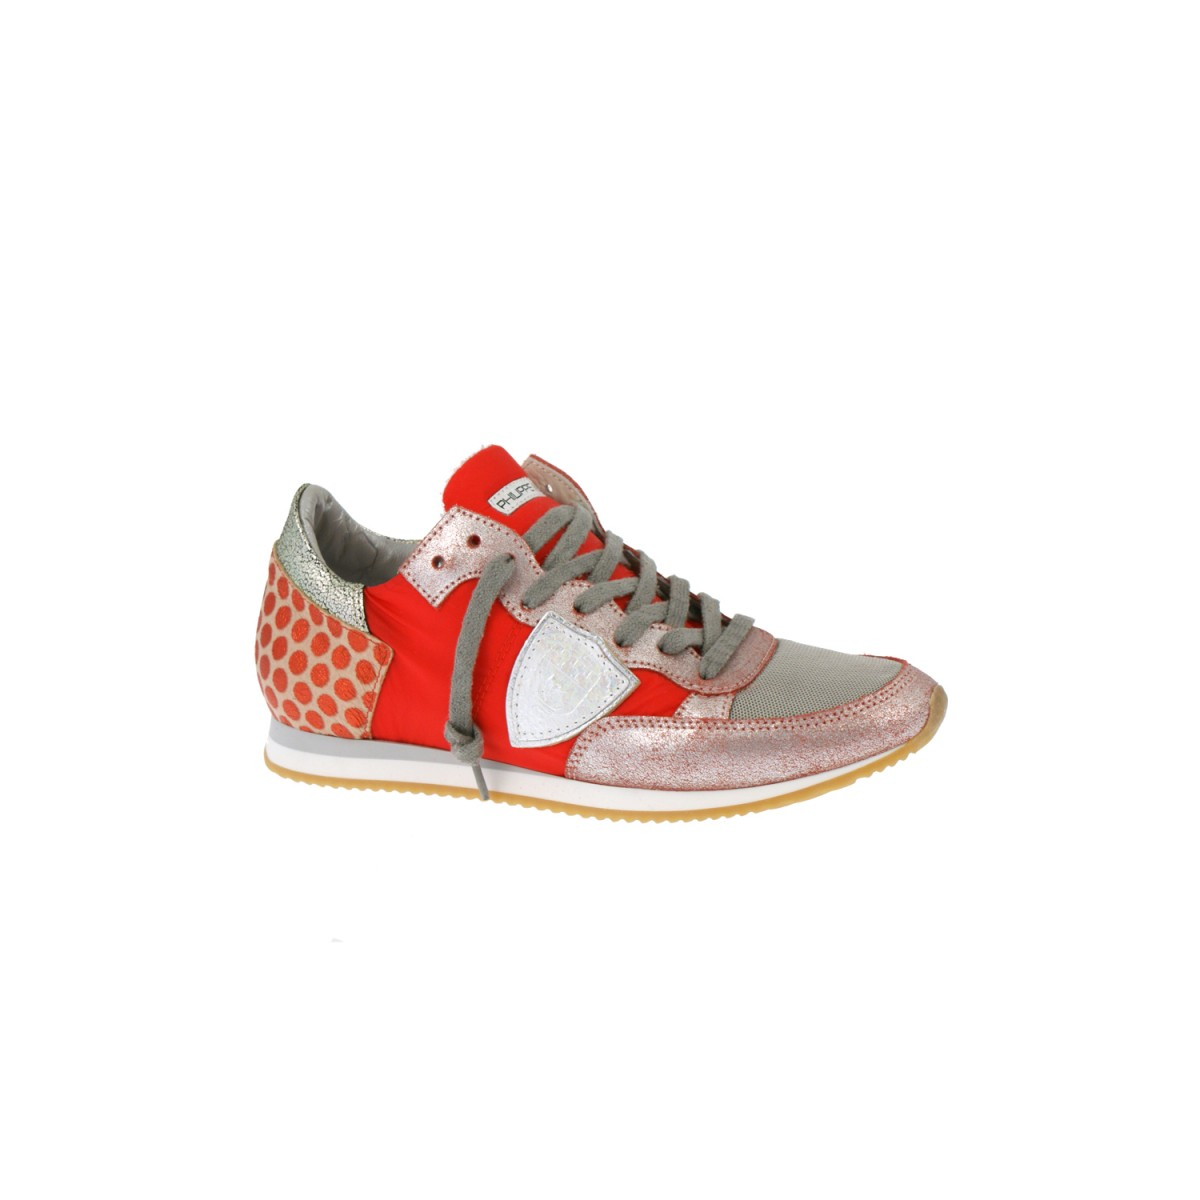 Philippe Model TRLD DT03 Tropez Red Dots-30